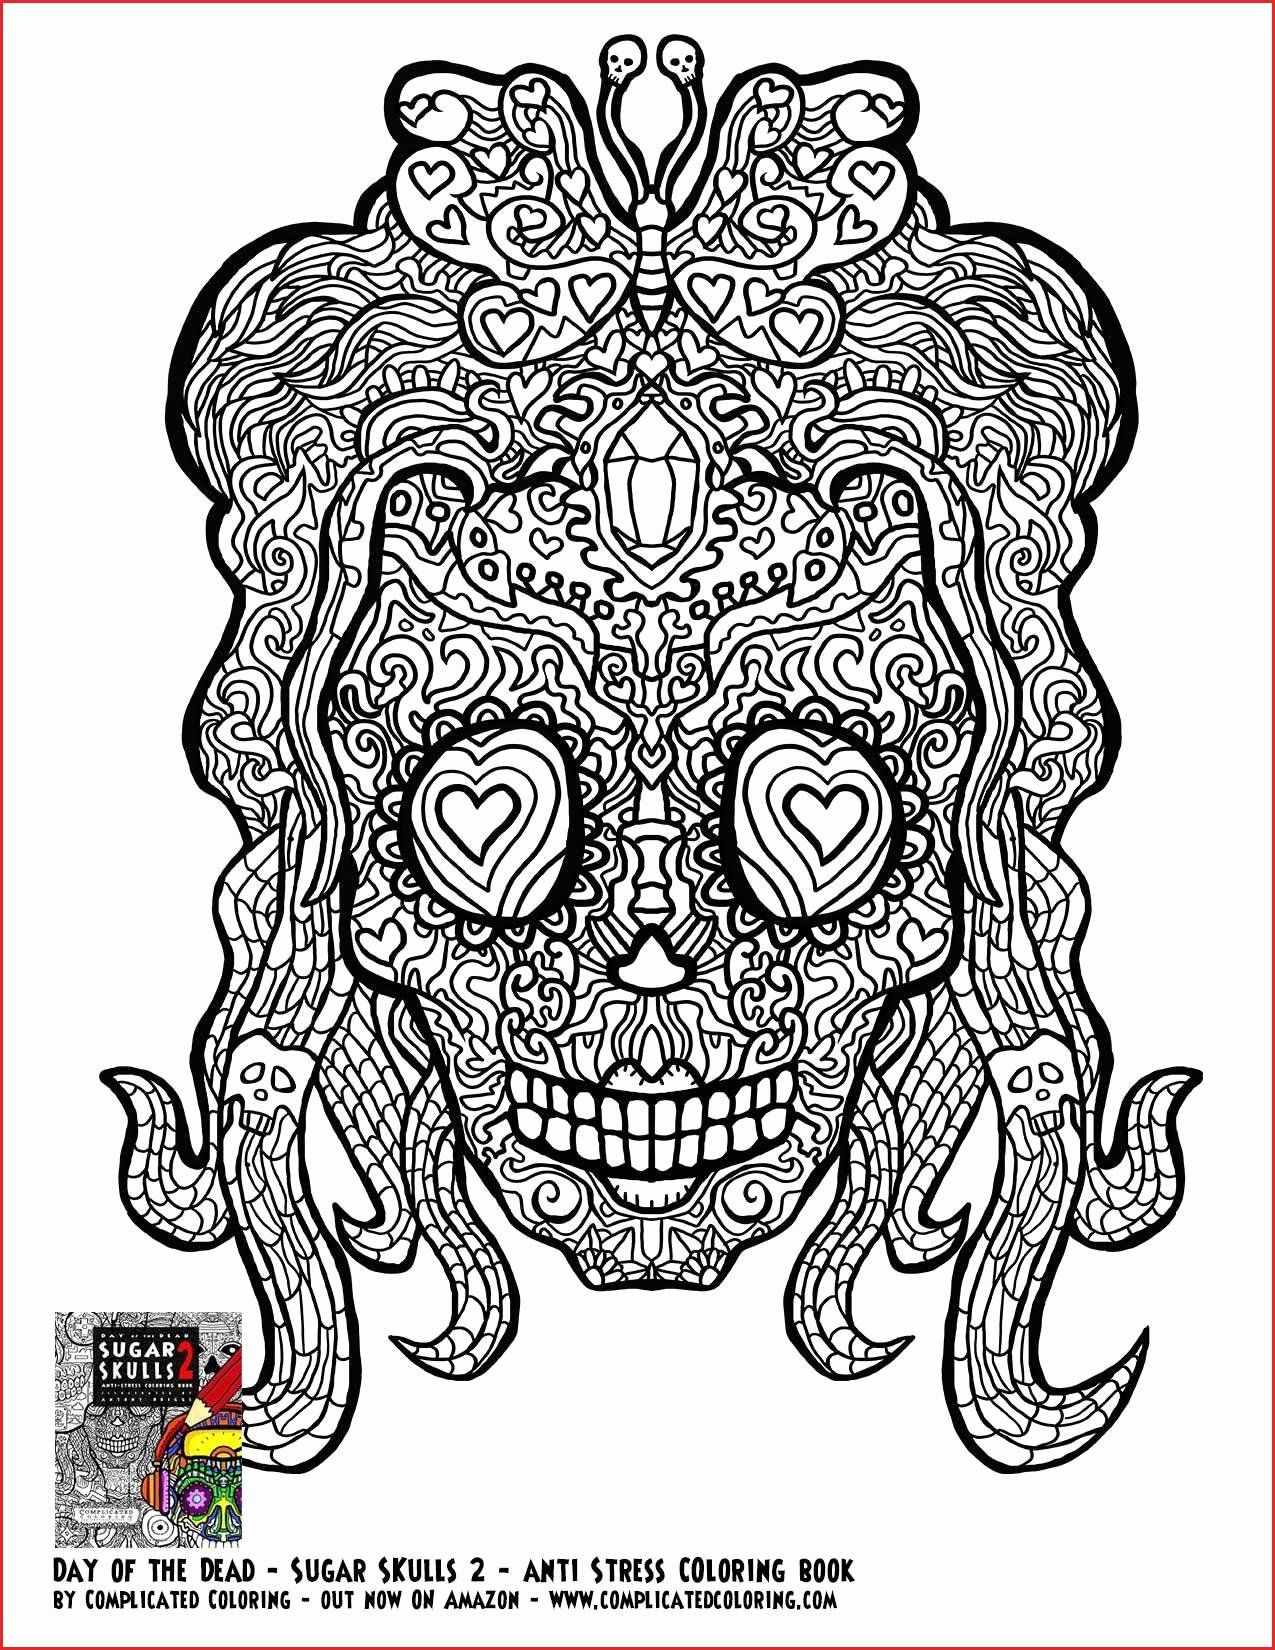 Hard Christmas Coloring Pages Printables Fresh Showcase Plicated Coloring Pages For Adults St Skull Coloring Pages Detailed Coloring Pages Heart Coloring Pages